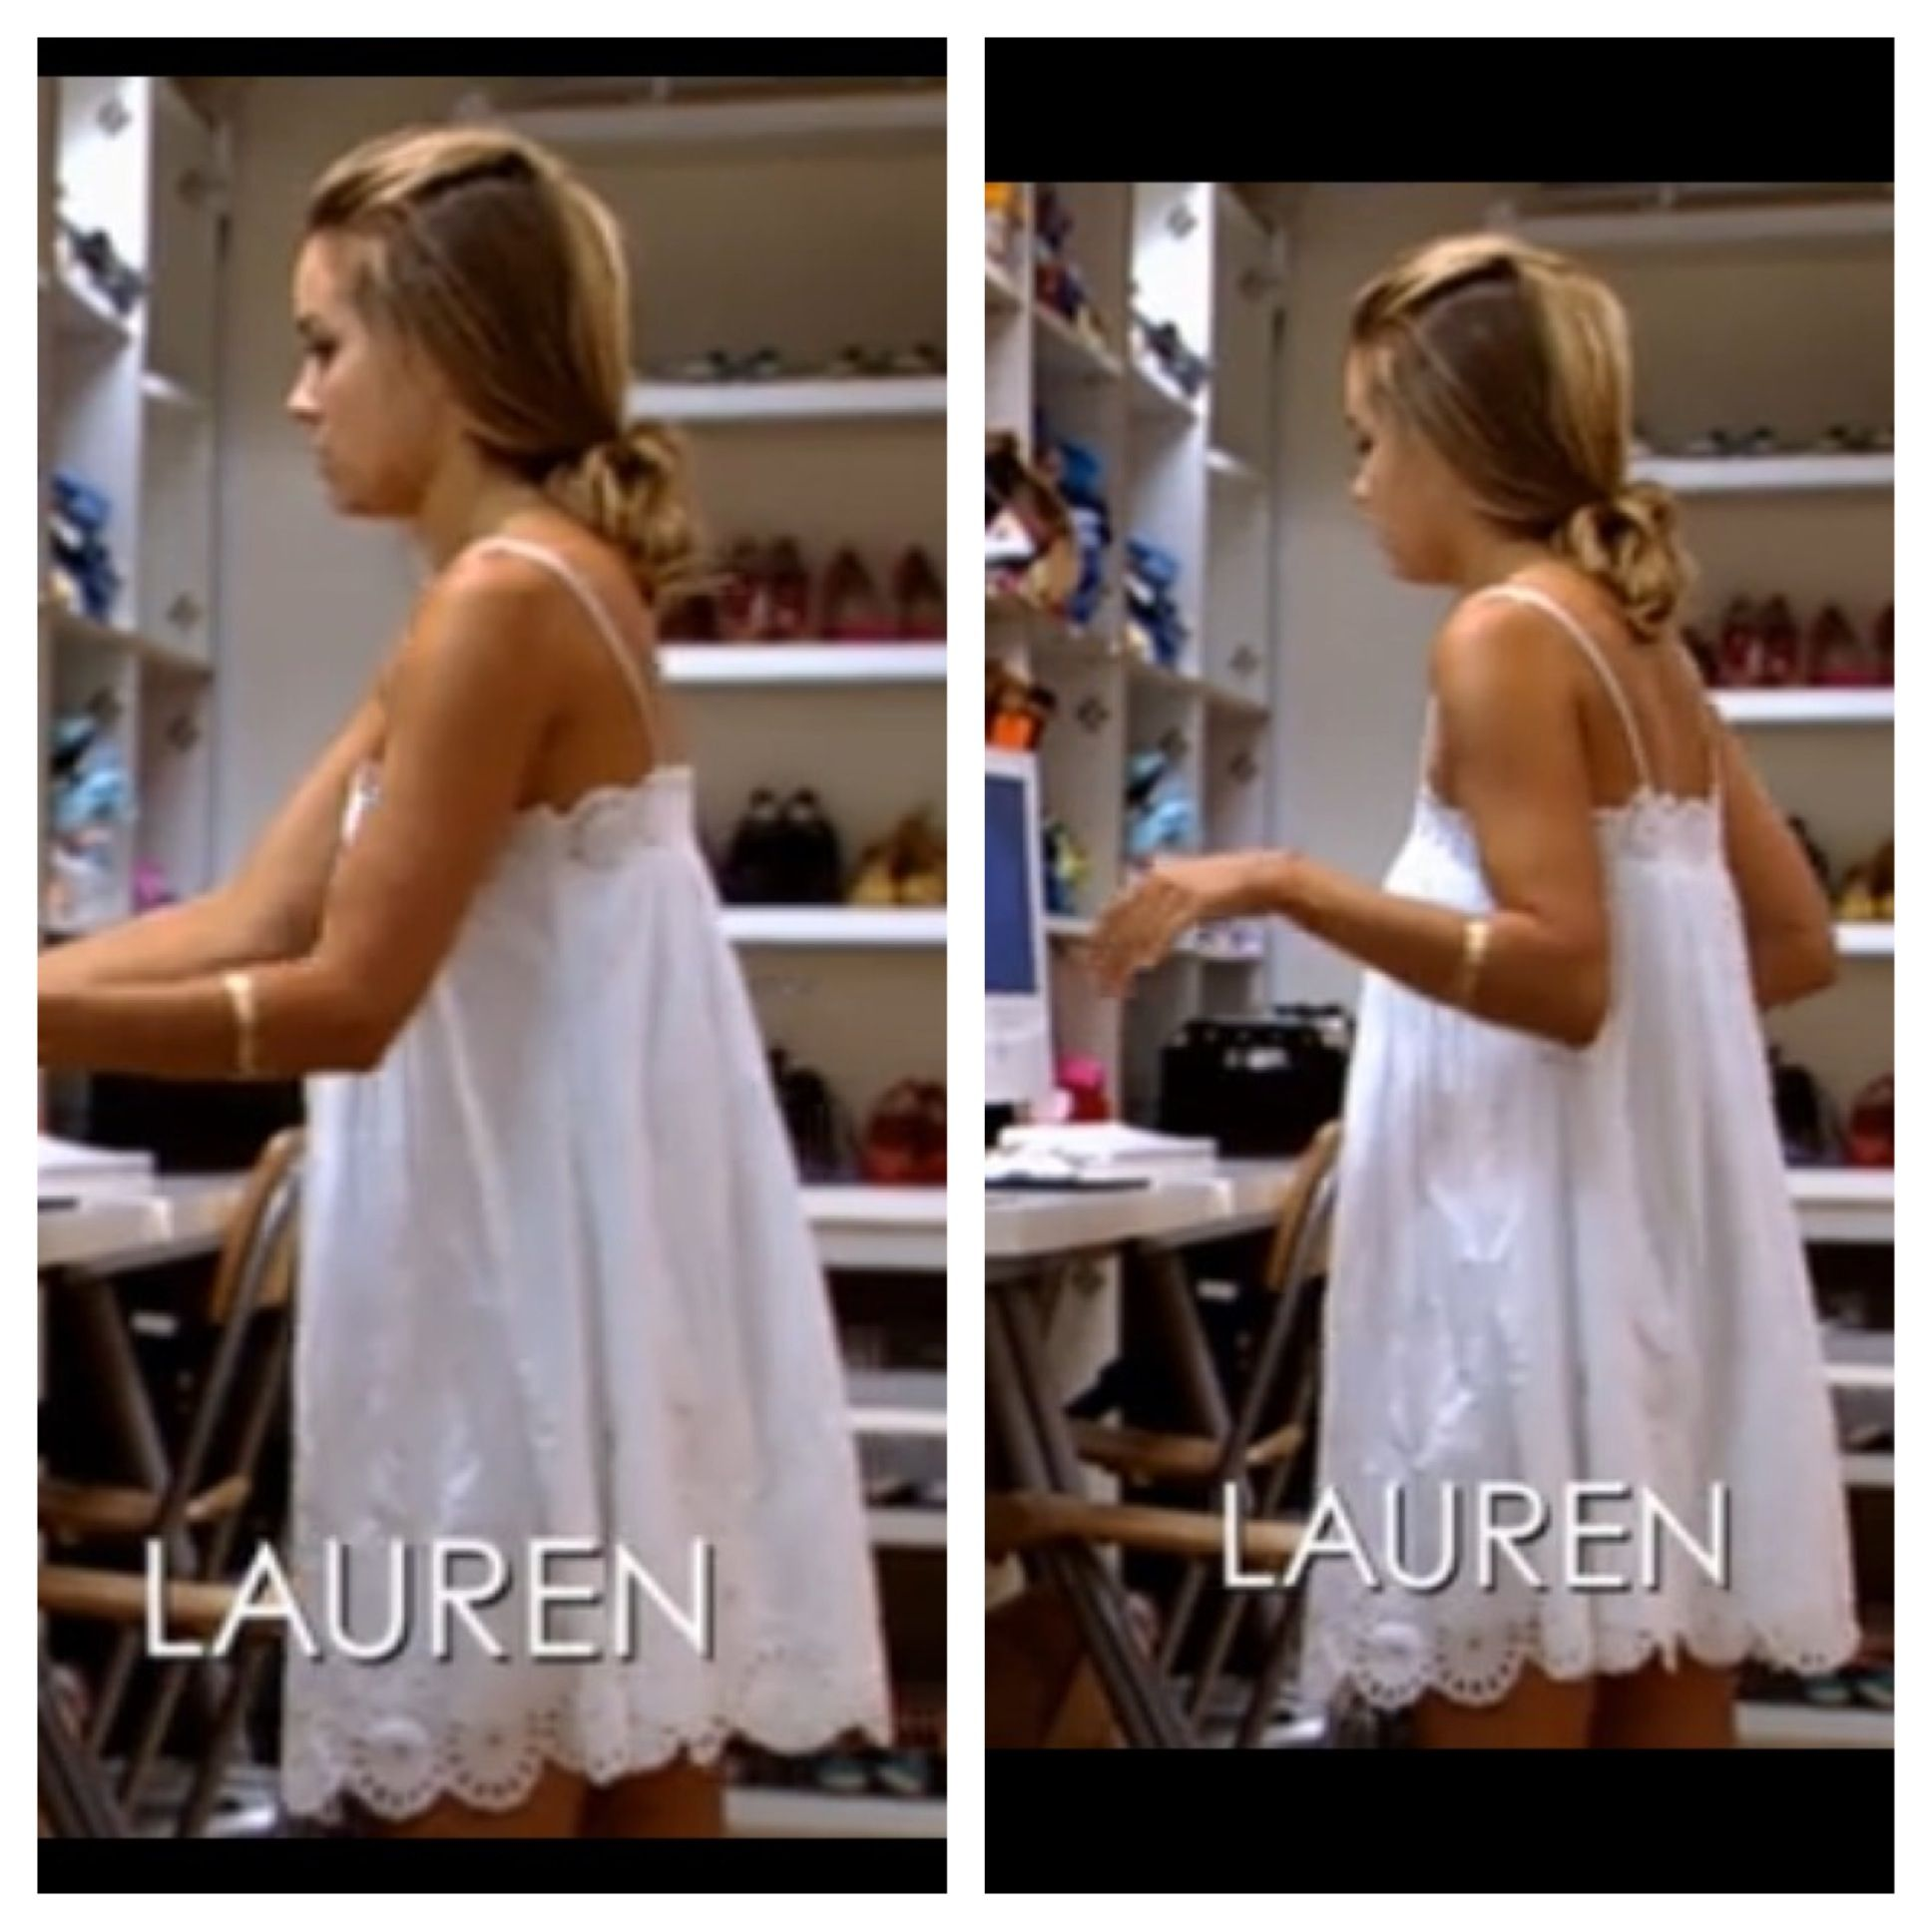 8f5222e8be62 I really love this dress Lauren Conrad wore on season 3 of The Hills! Has  anyone seen one or know were to get one? :) Beautiful Fun dress # laurenconrad # ...